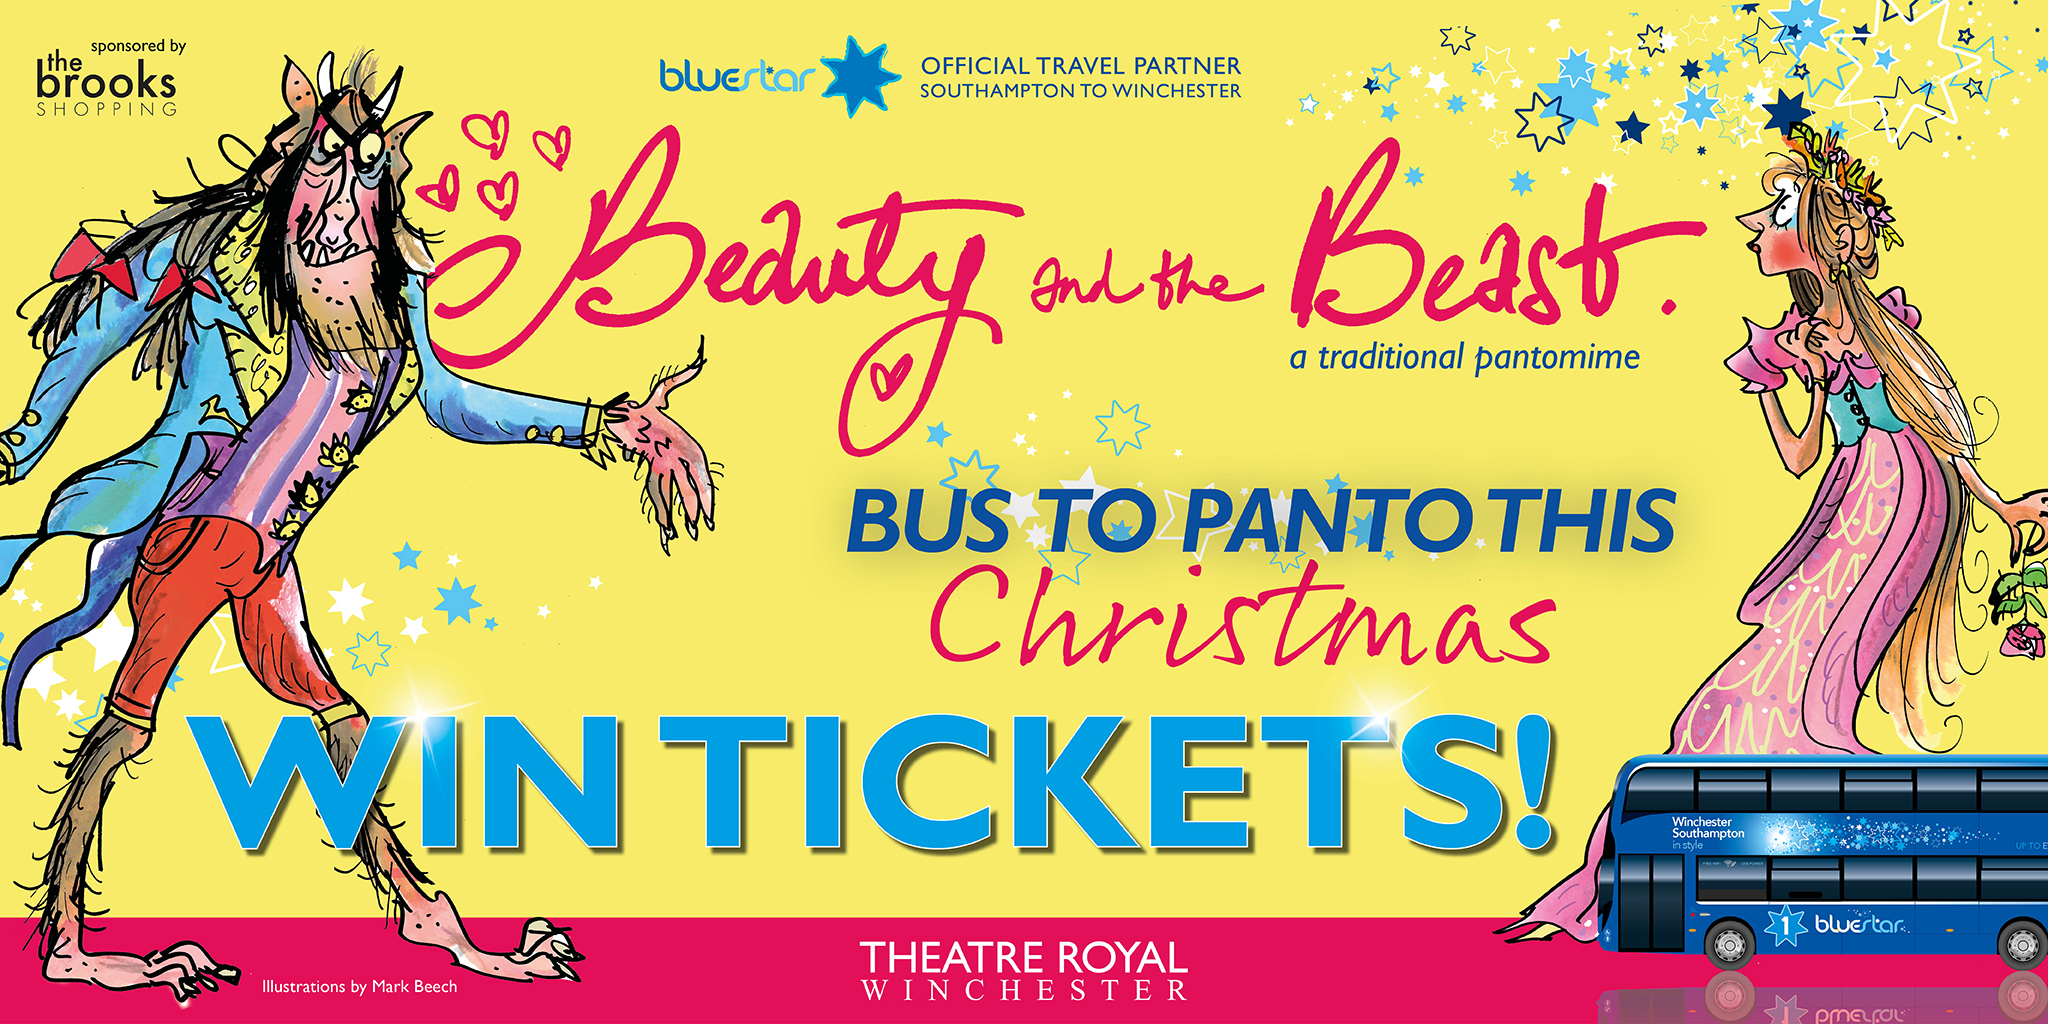 See Beauty and the Beast at Theatre Royal Winchester this Christmas